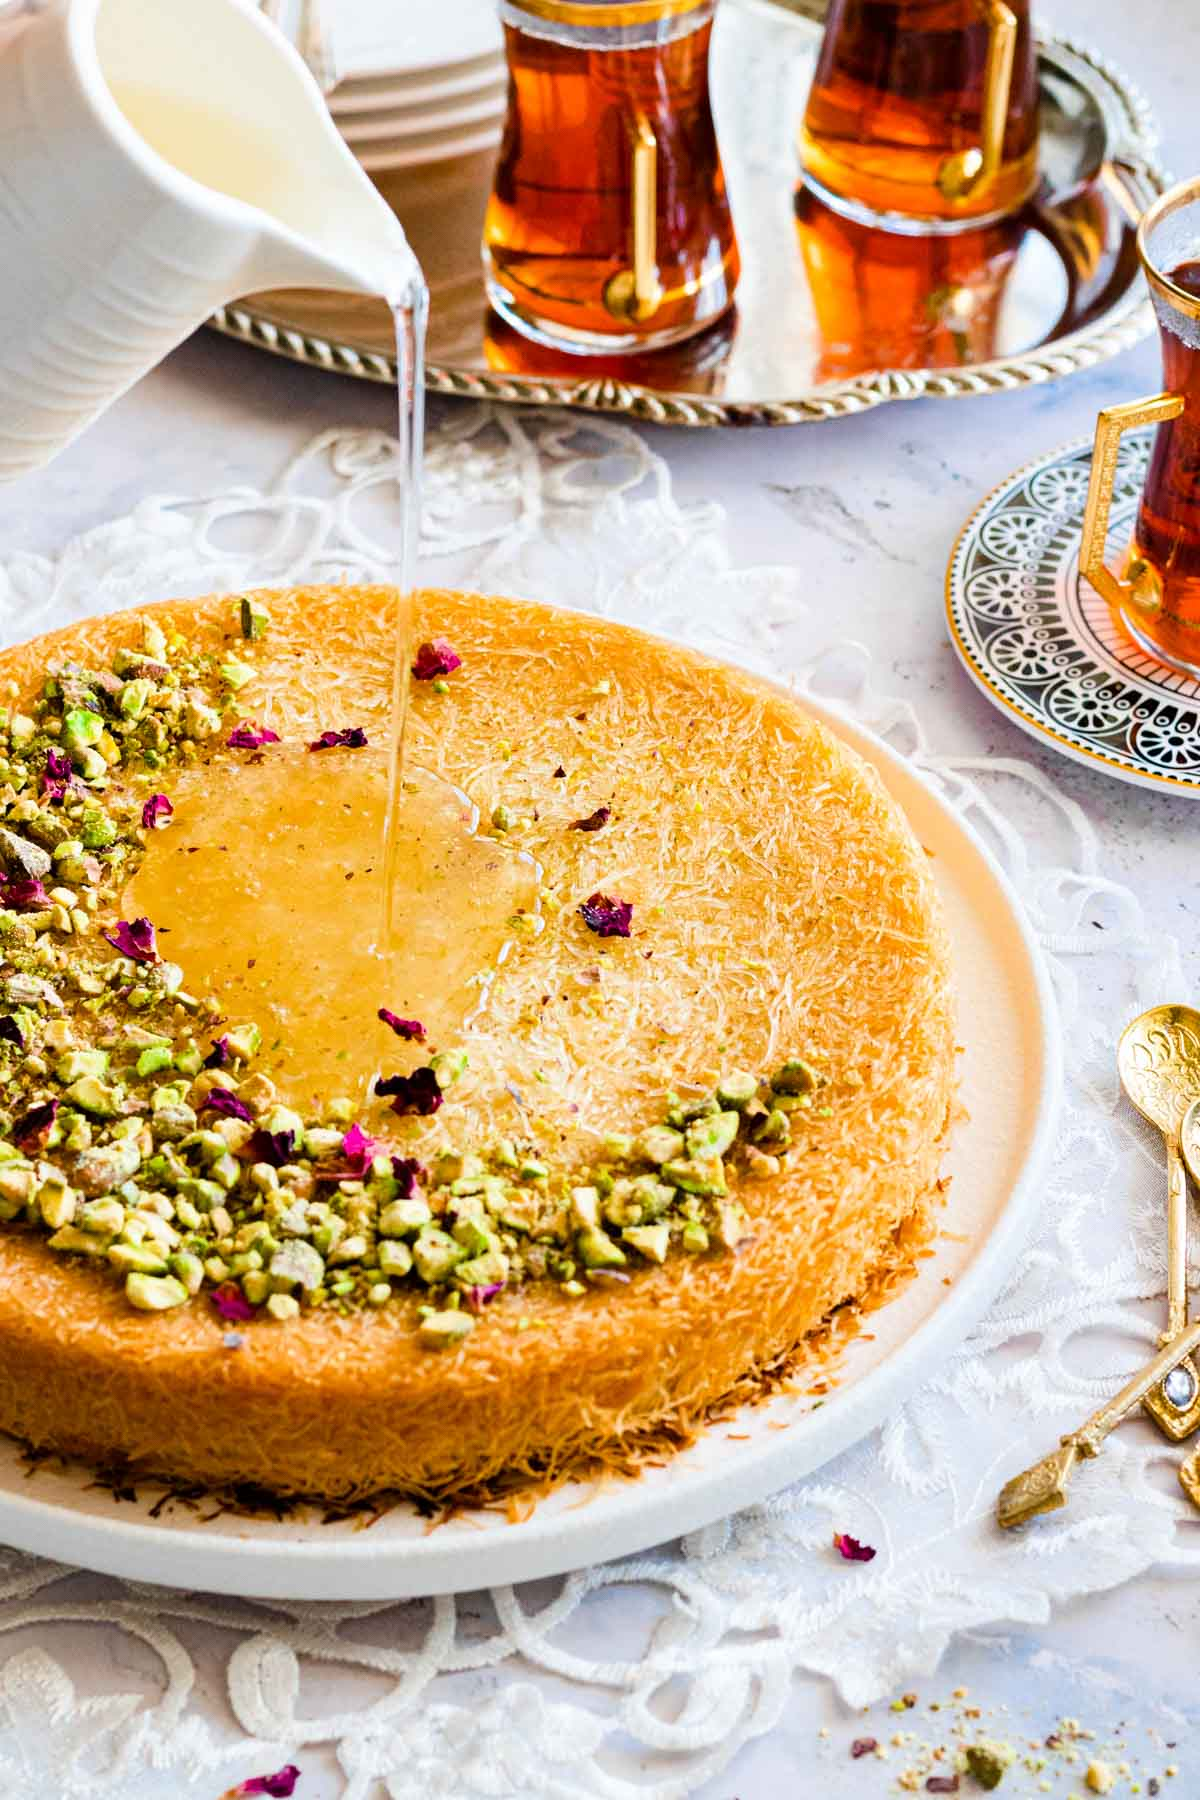 Golden phyllo dough pastry served on a plate garnished with nuts and drizzled with sugar syrup.